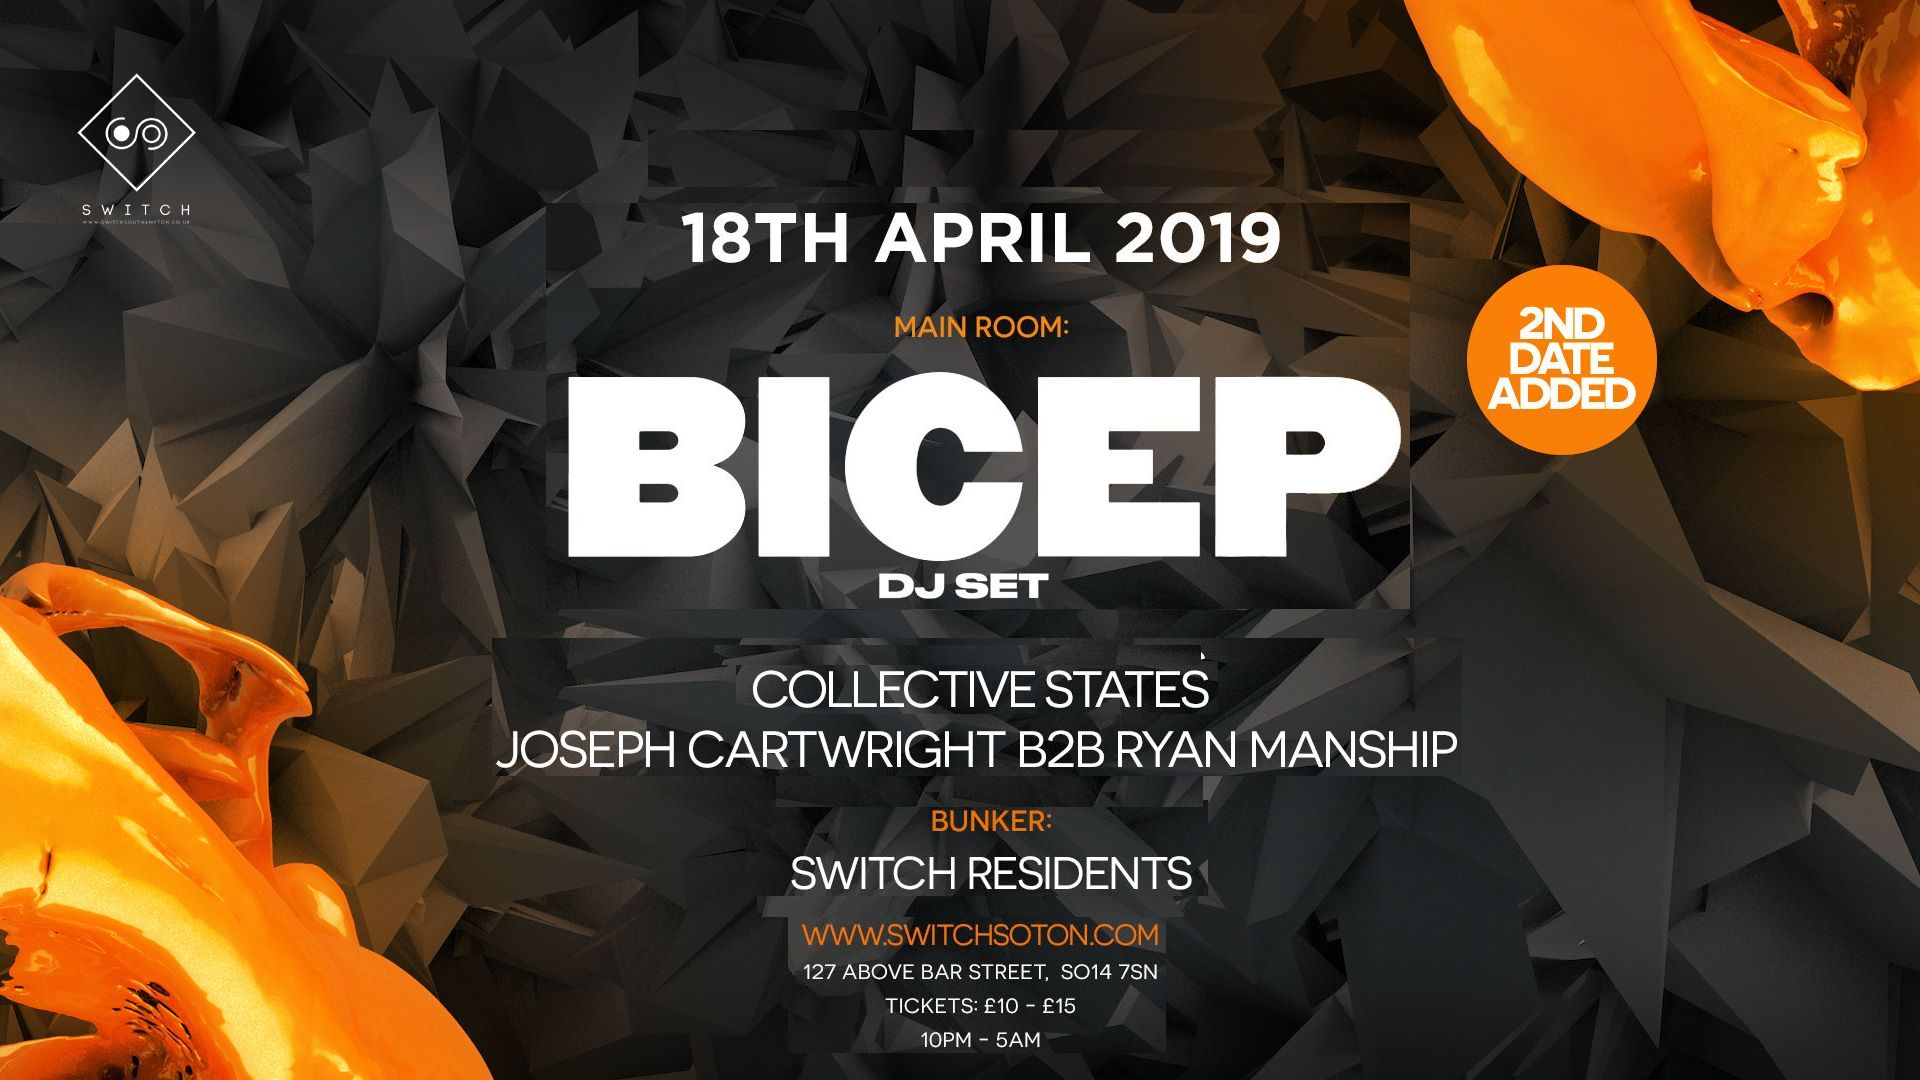 BICEP • Easter Thursday, 18th April